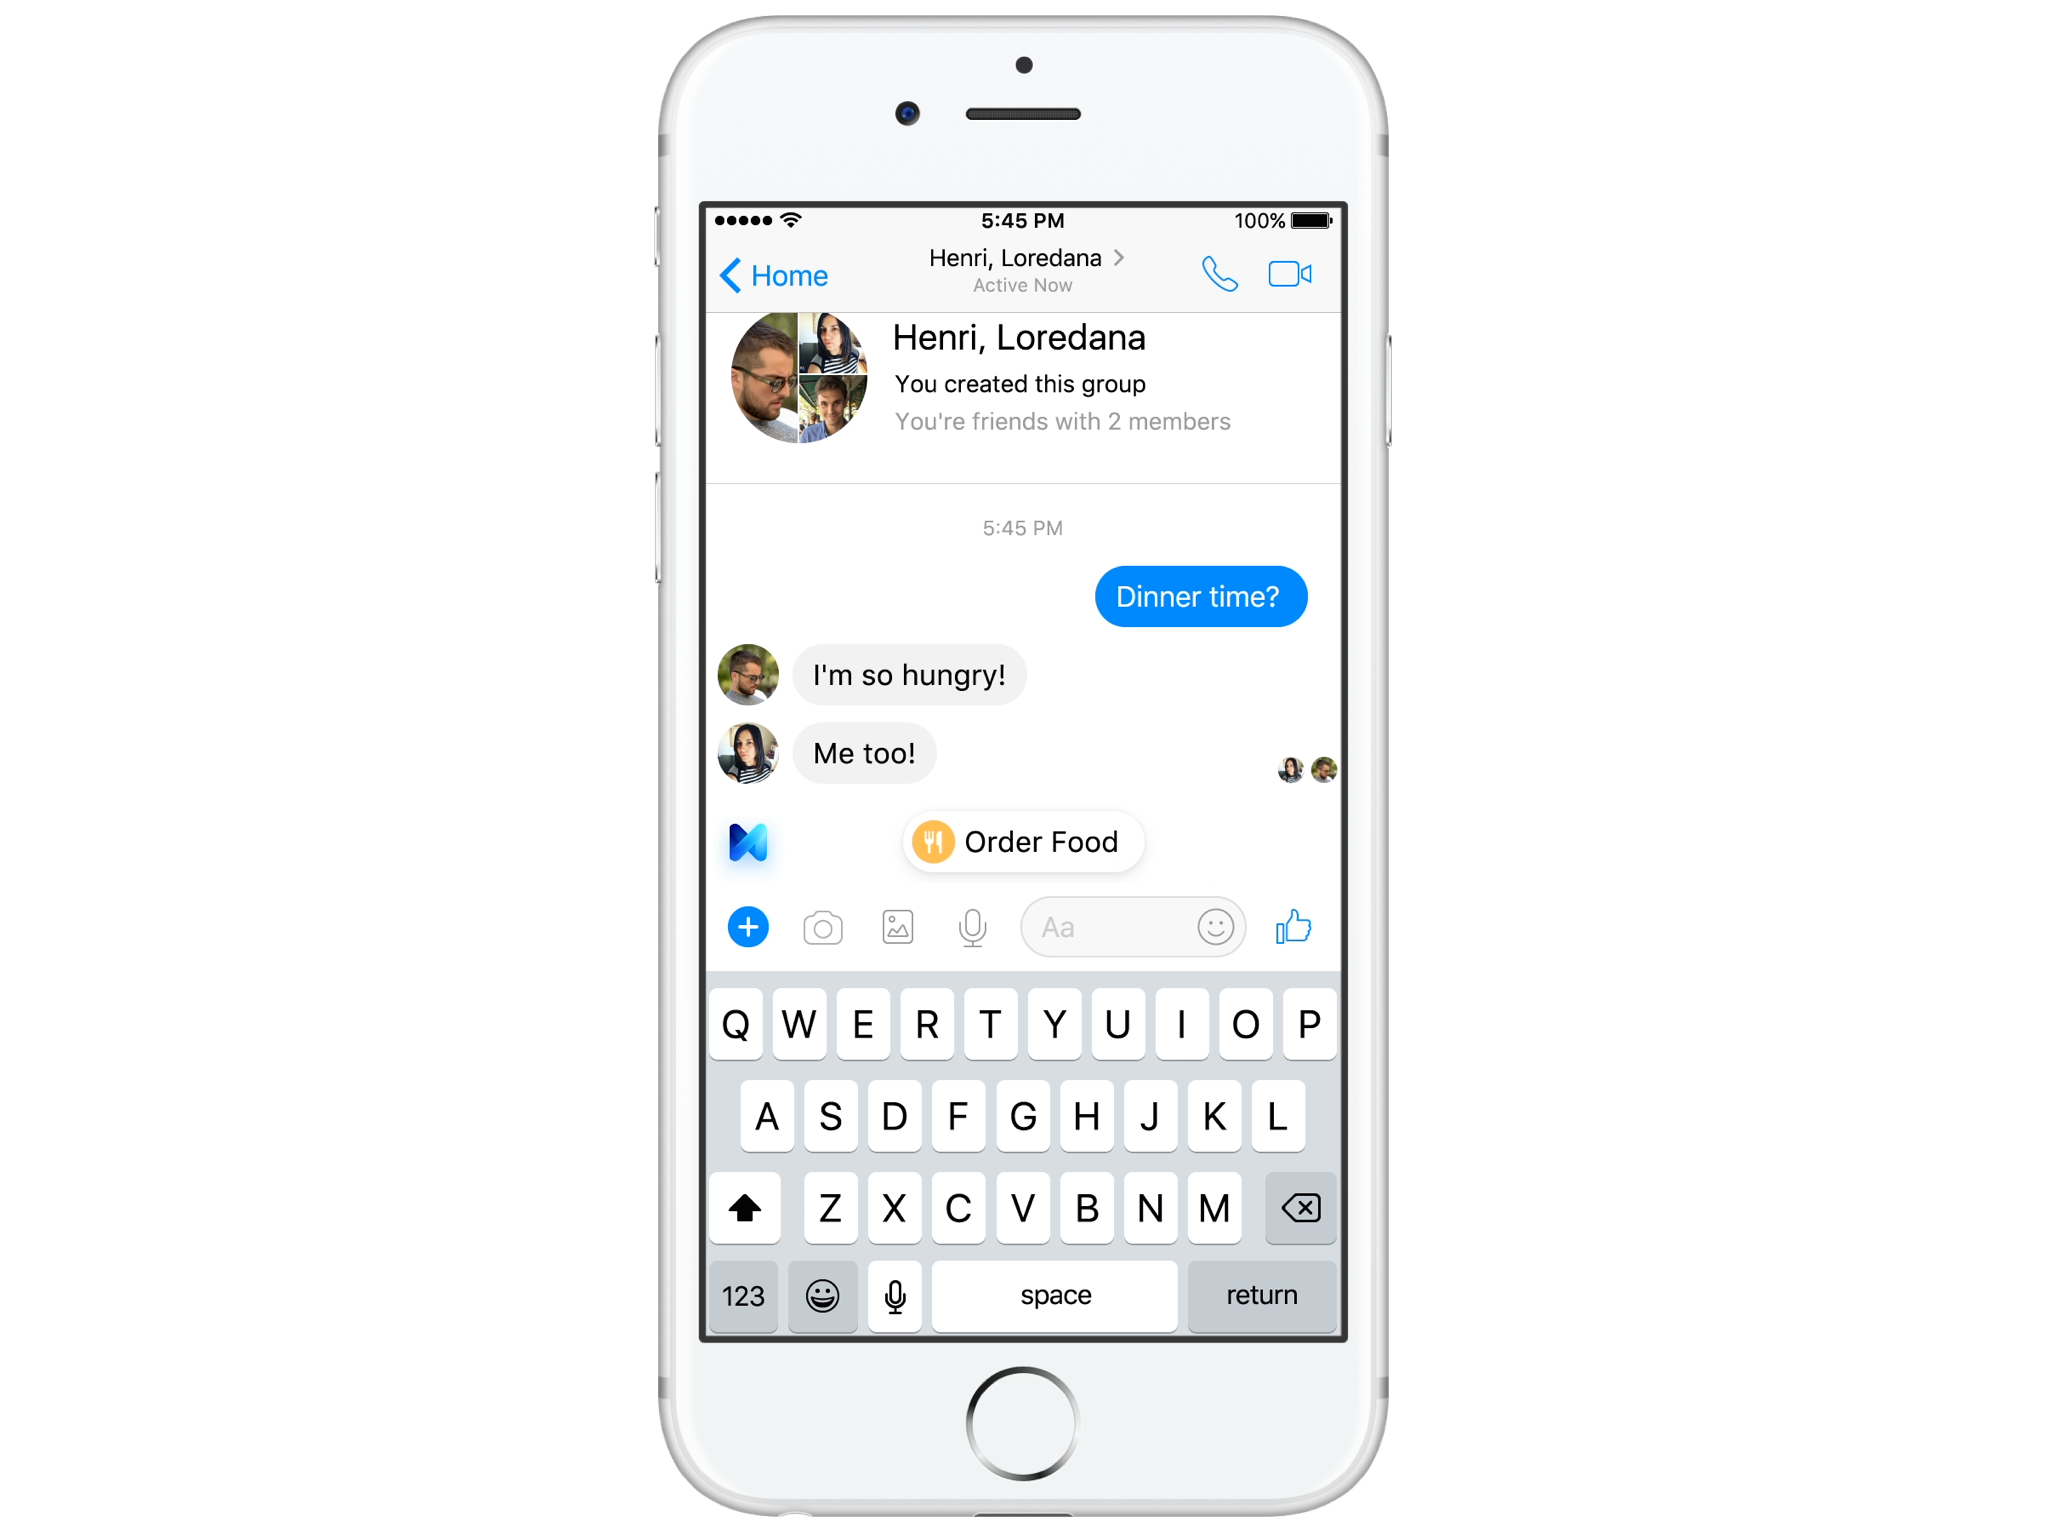 Facebook Messenger Just Made it Easier for Businesses to Pester Users